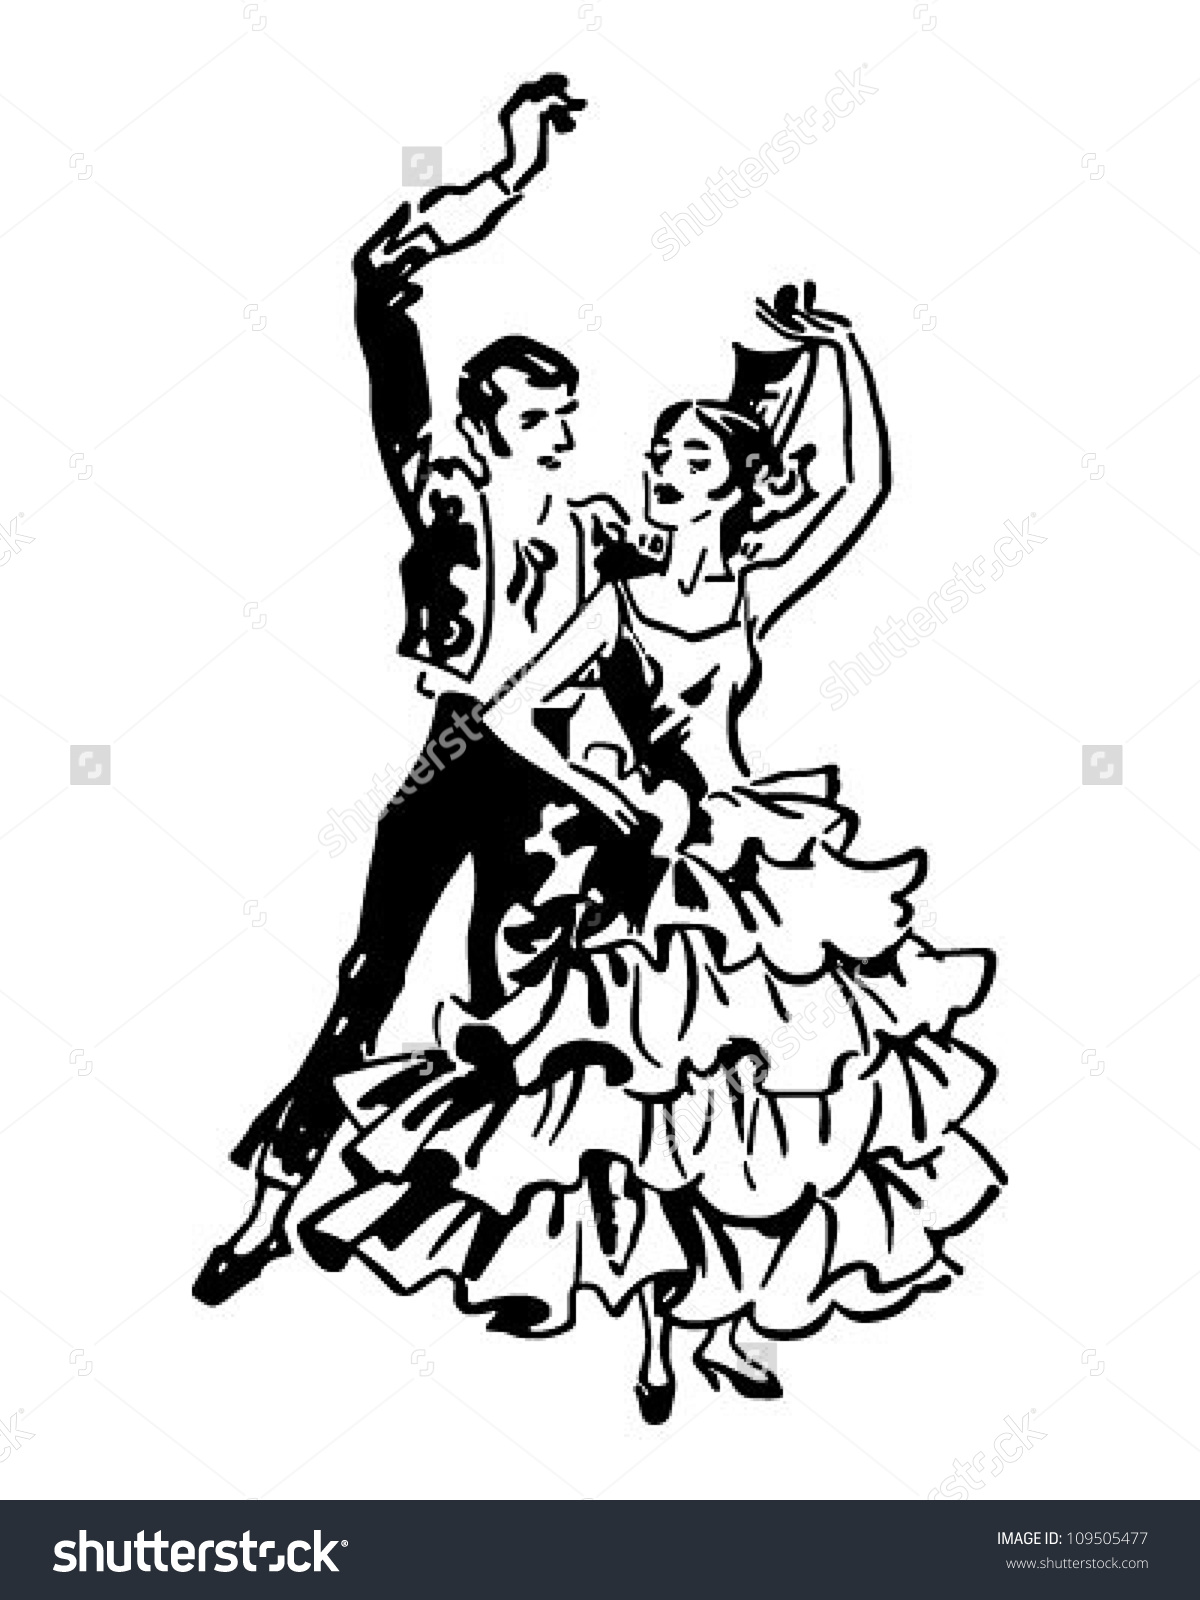 Flamenco dancer man clipart.